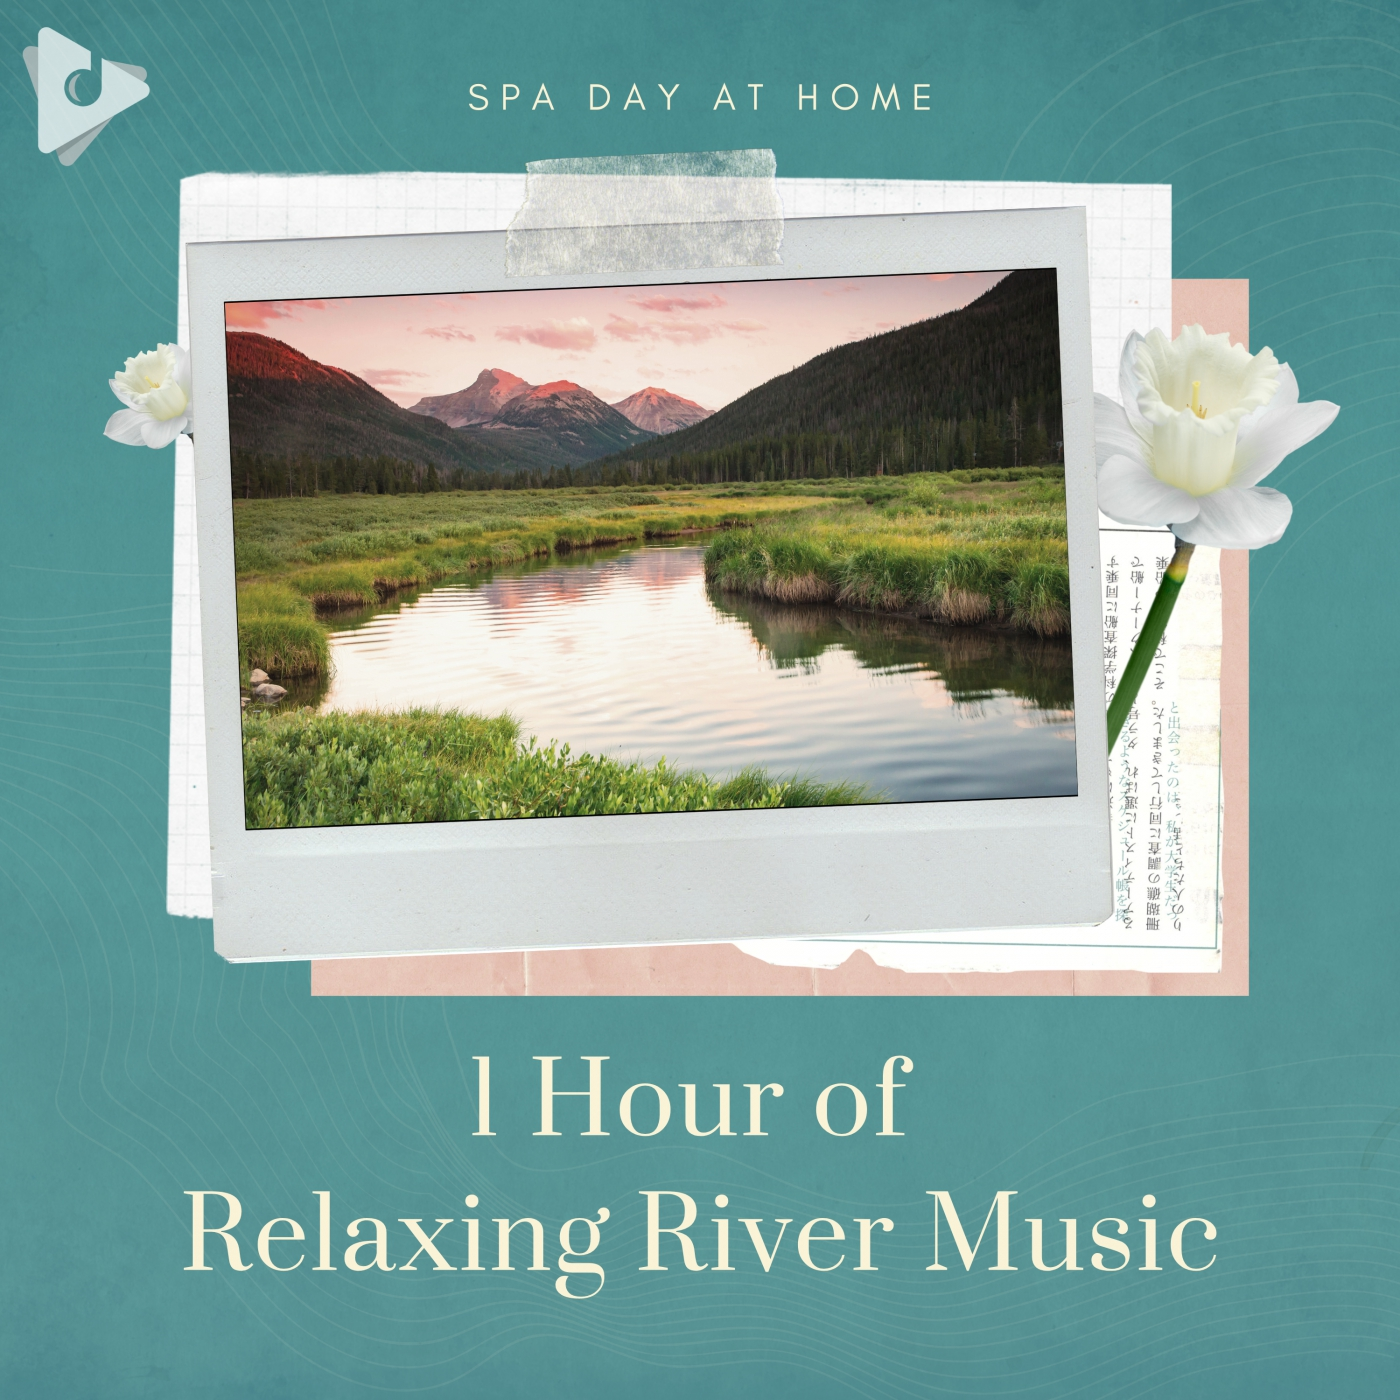 1 Hour of Relaxing River Music